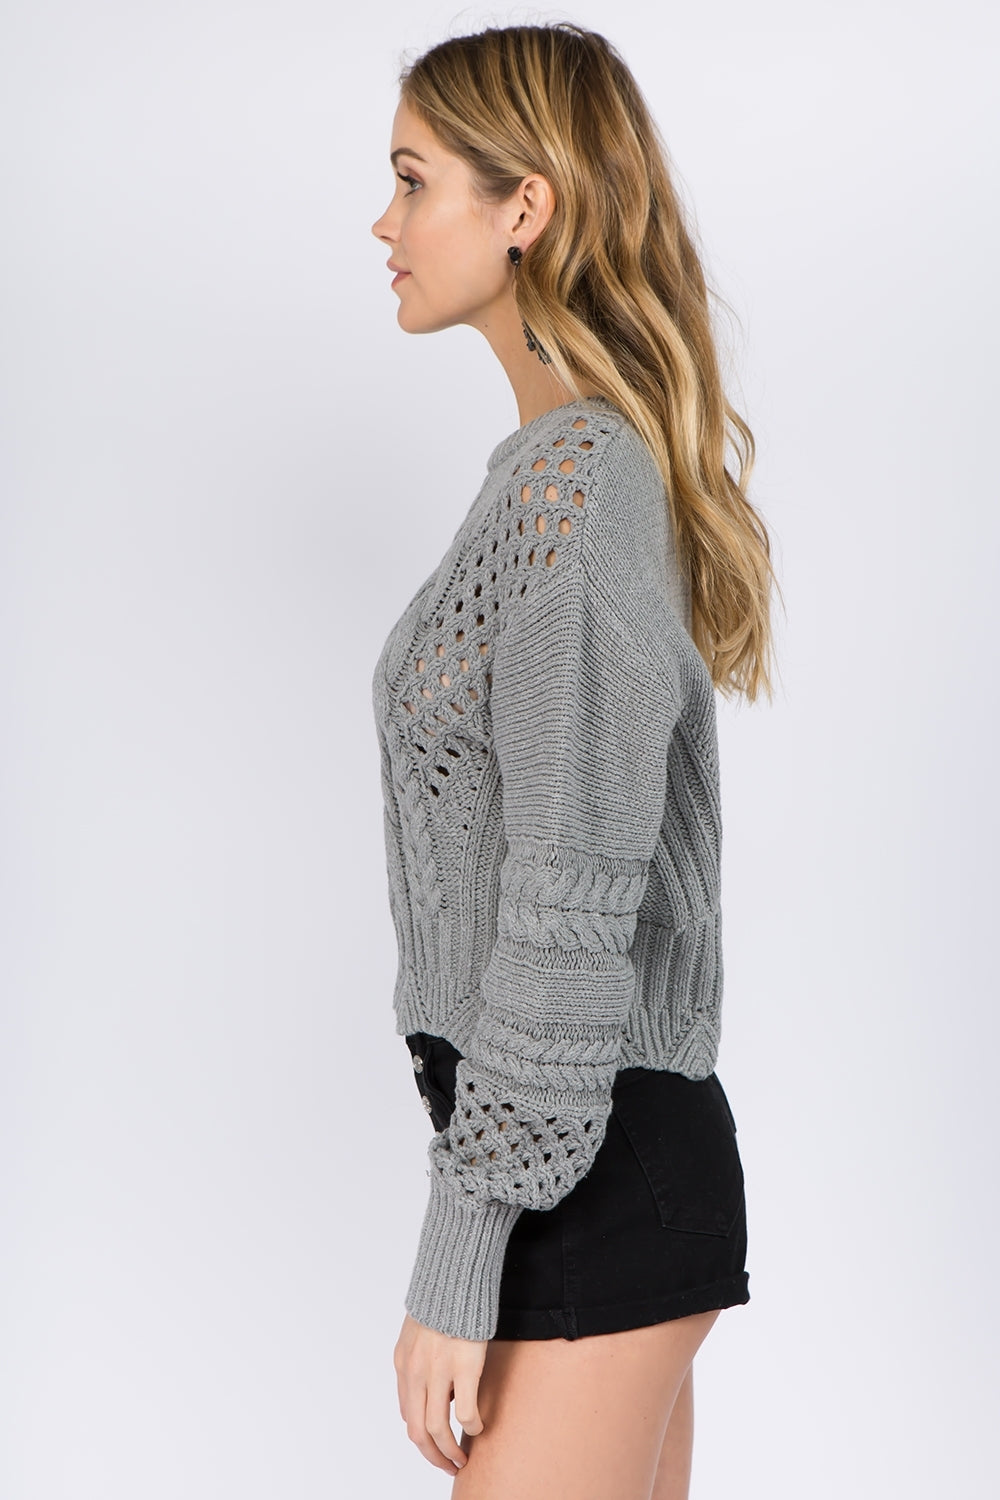 Knitted Long Sleeve Grey Pull Over Sweater